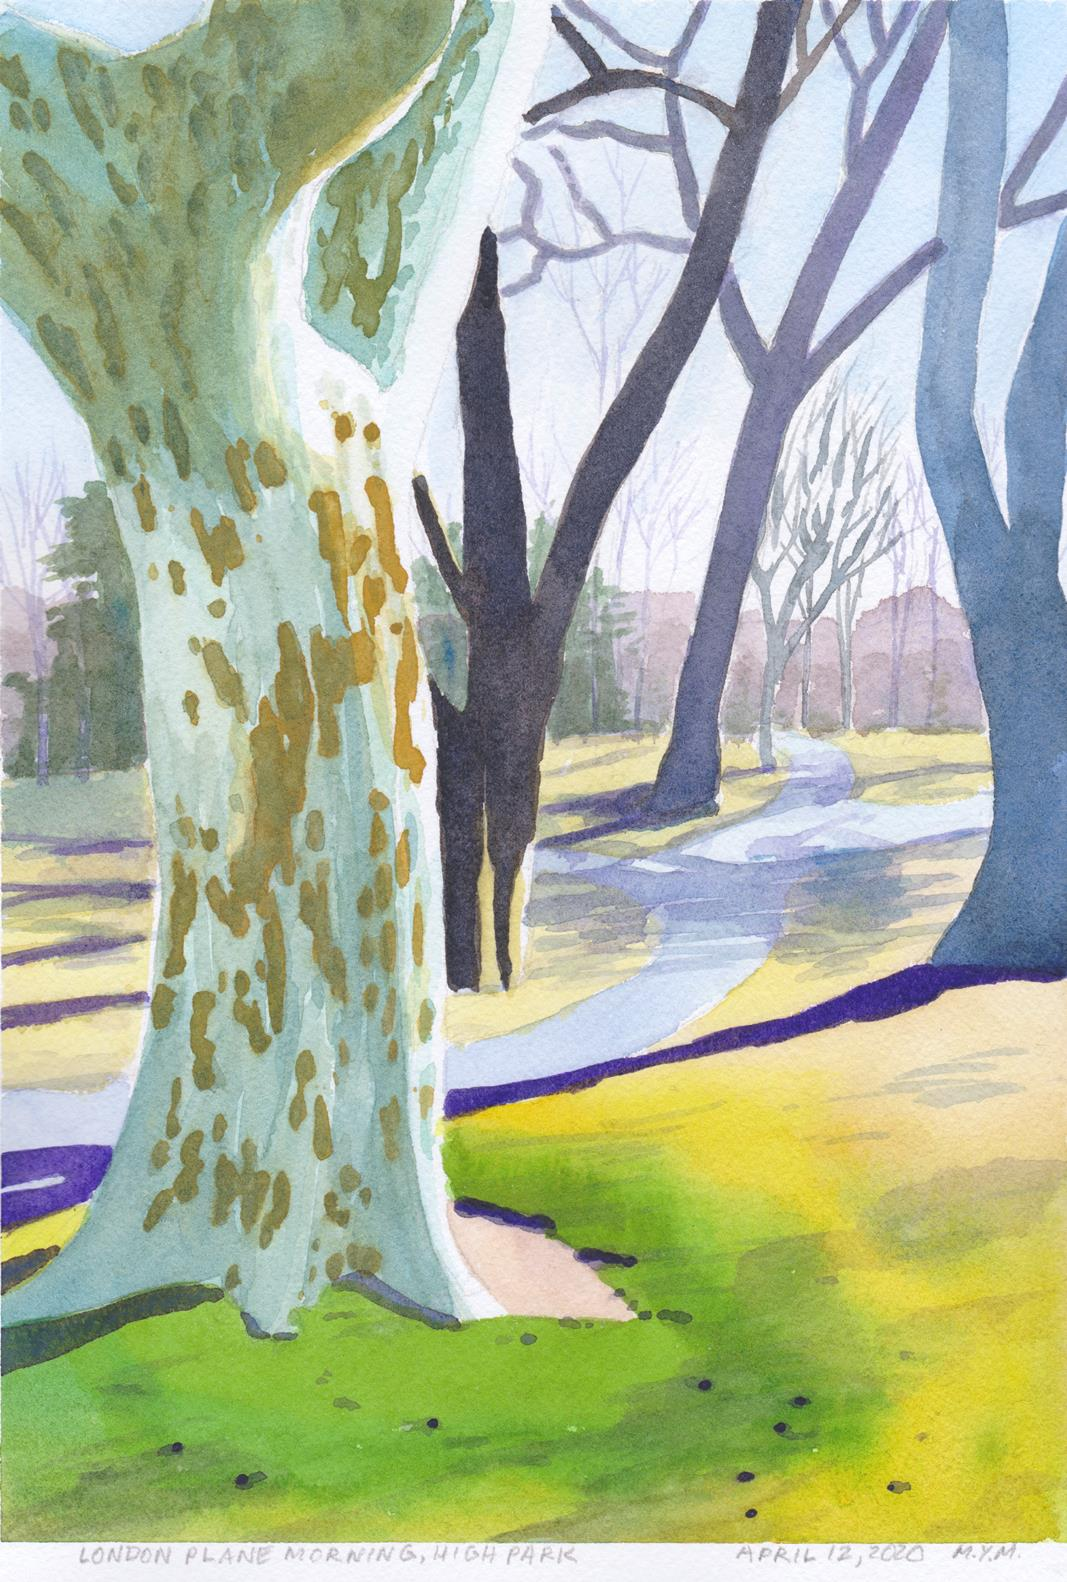 Original small watercolour painting of London PlanE tree in High Park